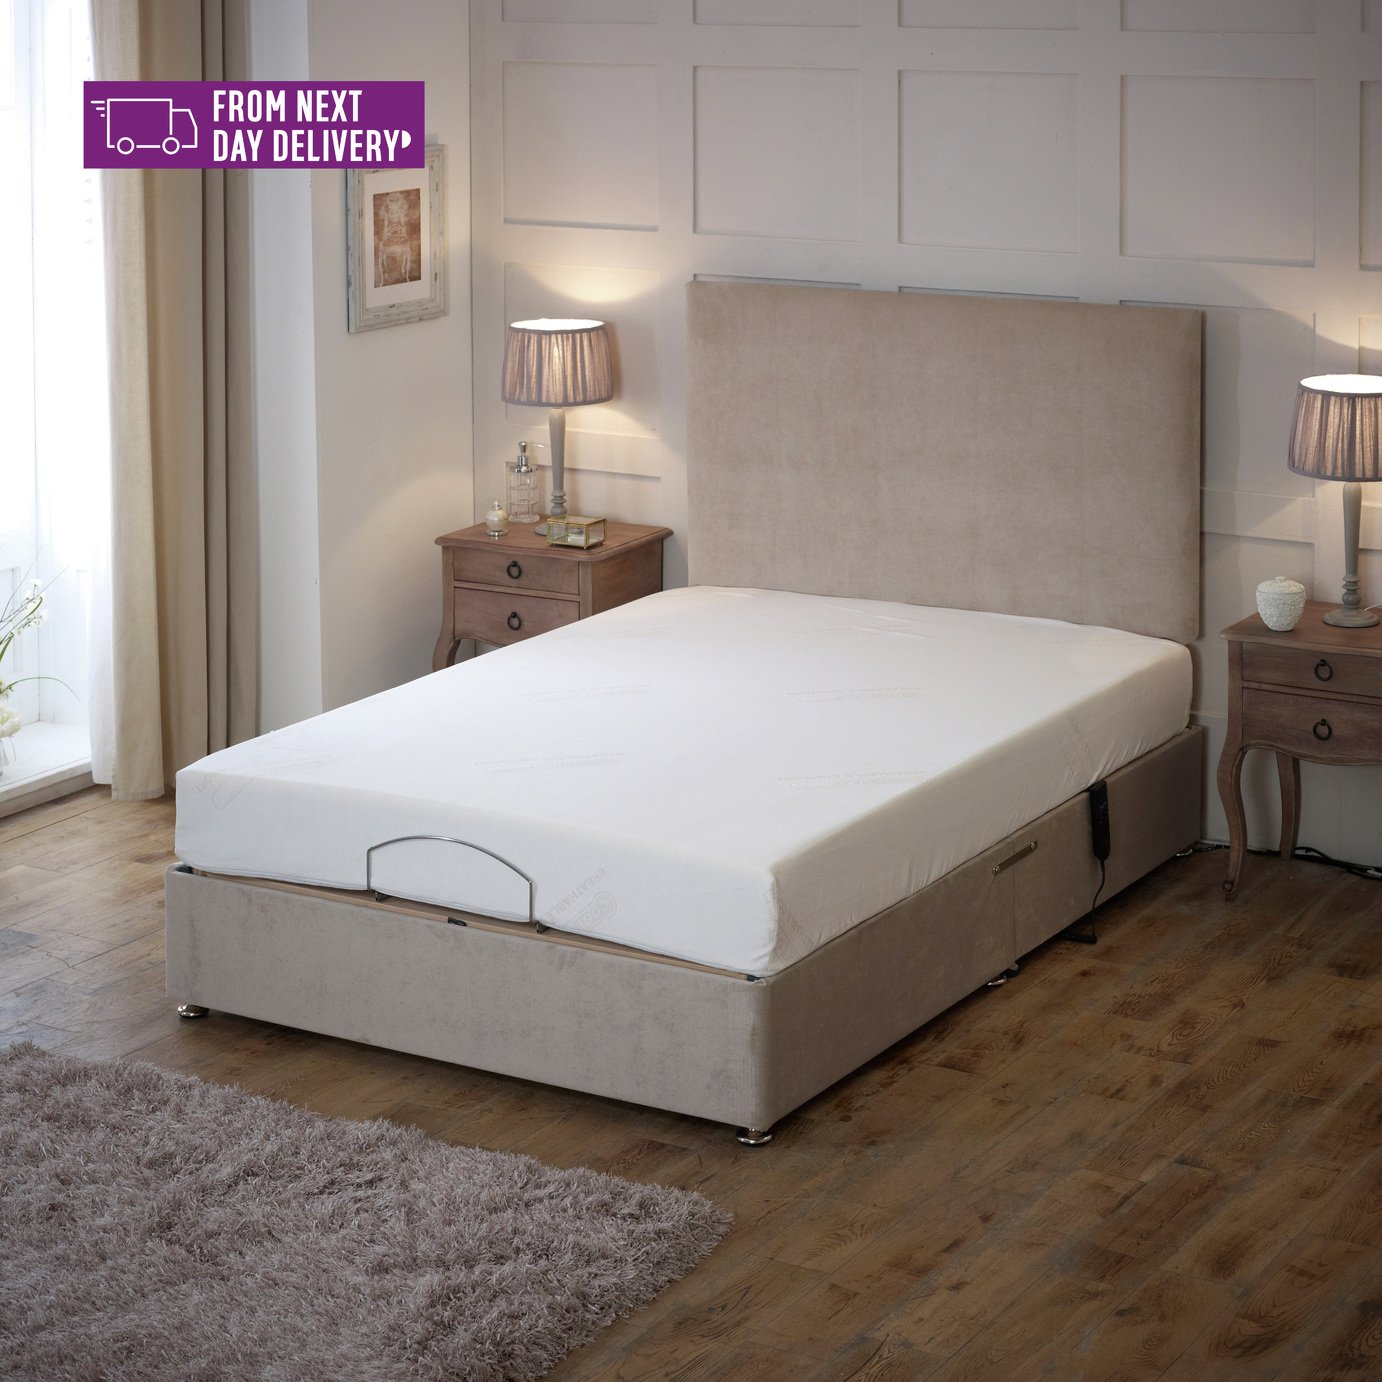 Imperial Double Adjustable Bed with a Memory Foam Mattress